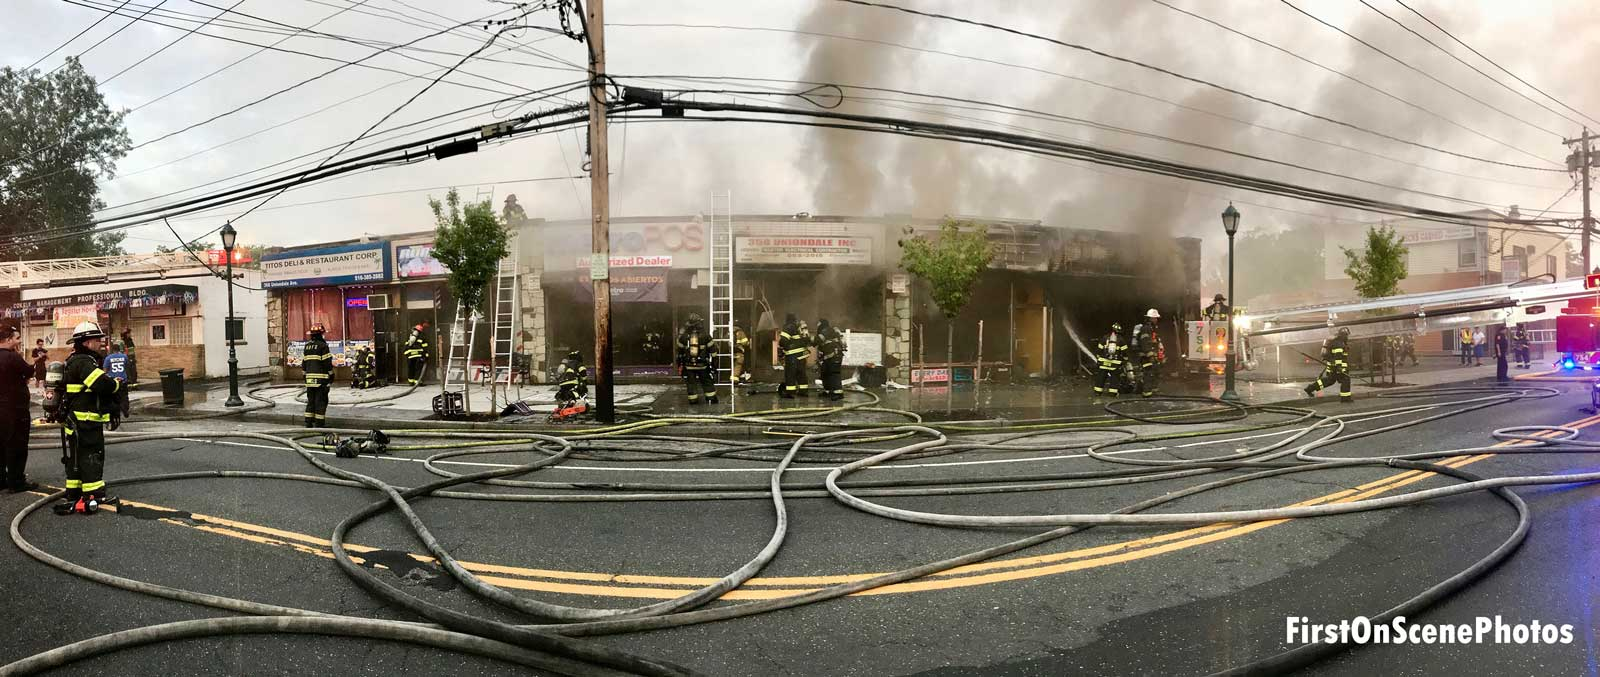 Panorama view of hoselines and multiple businesses burned in fire